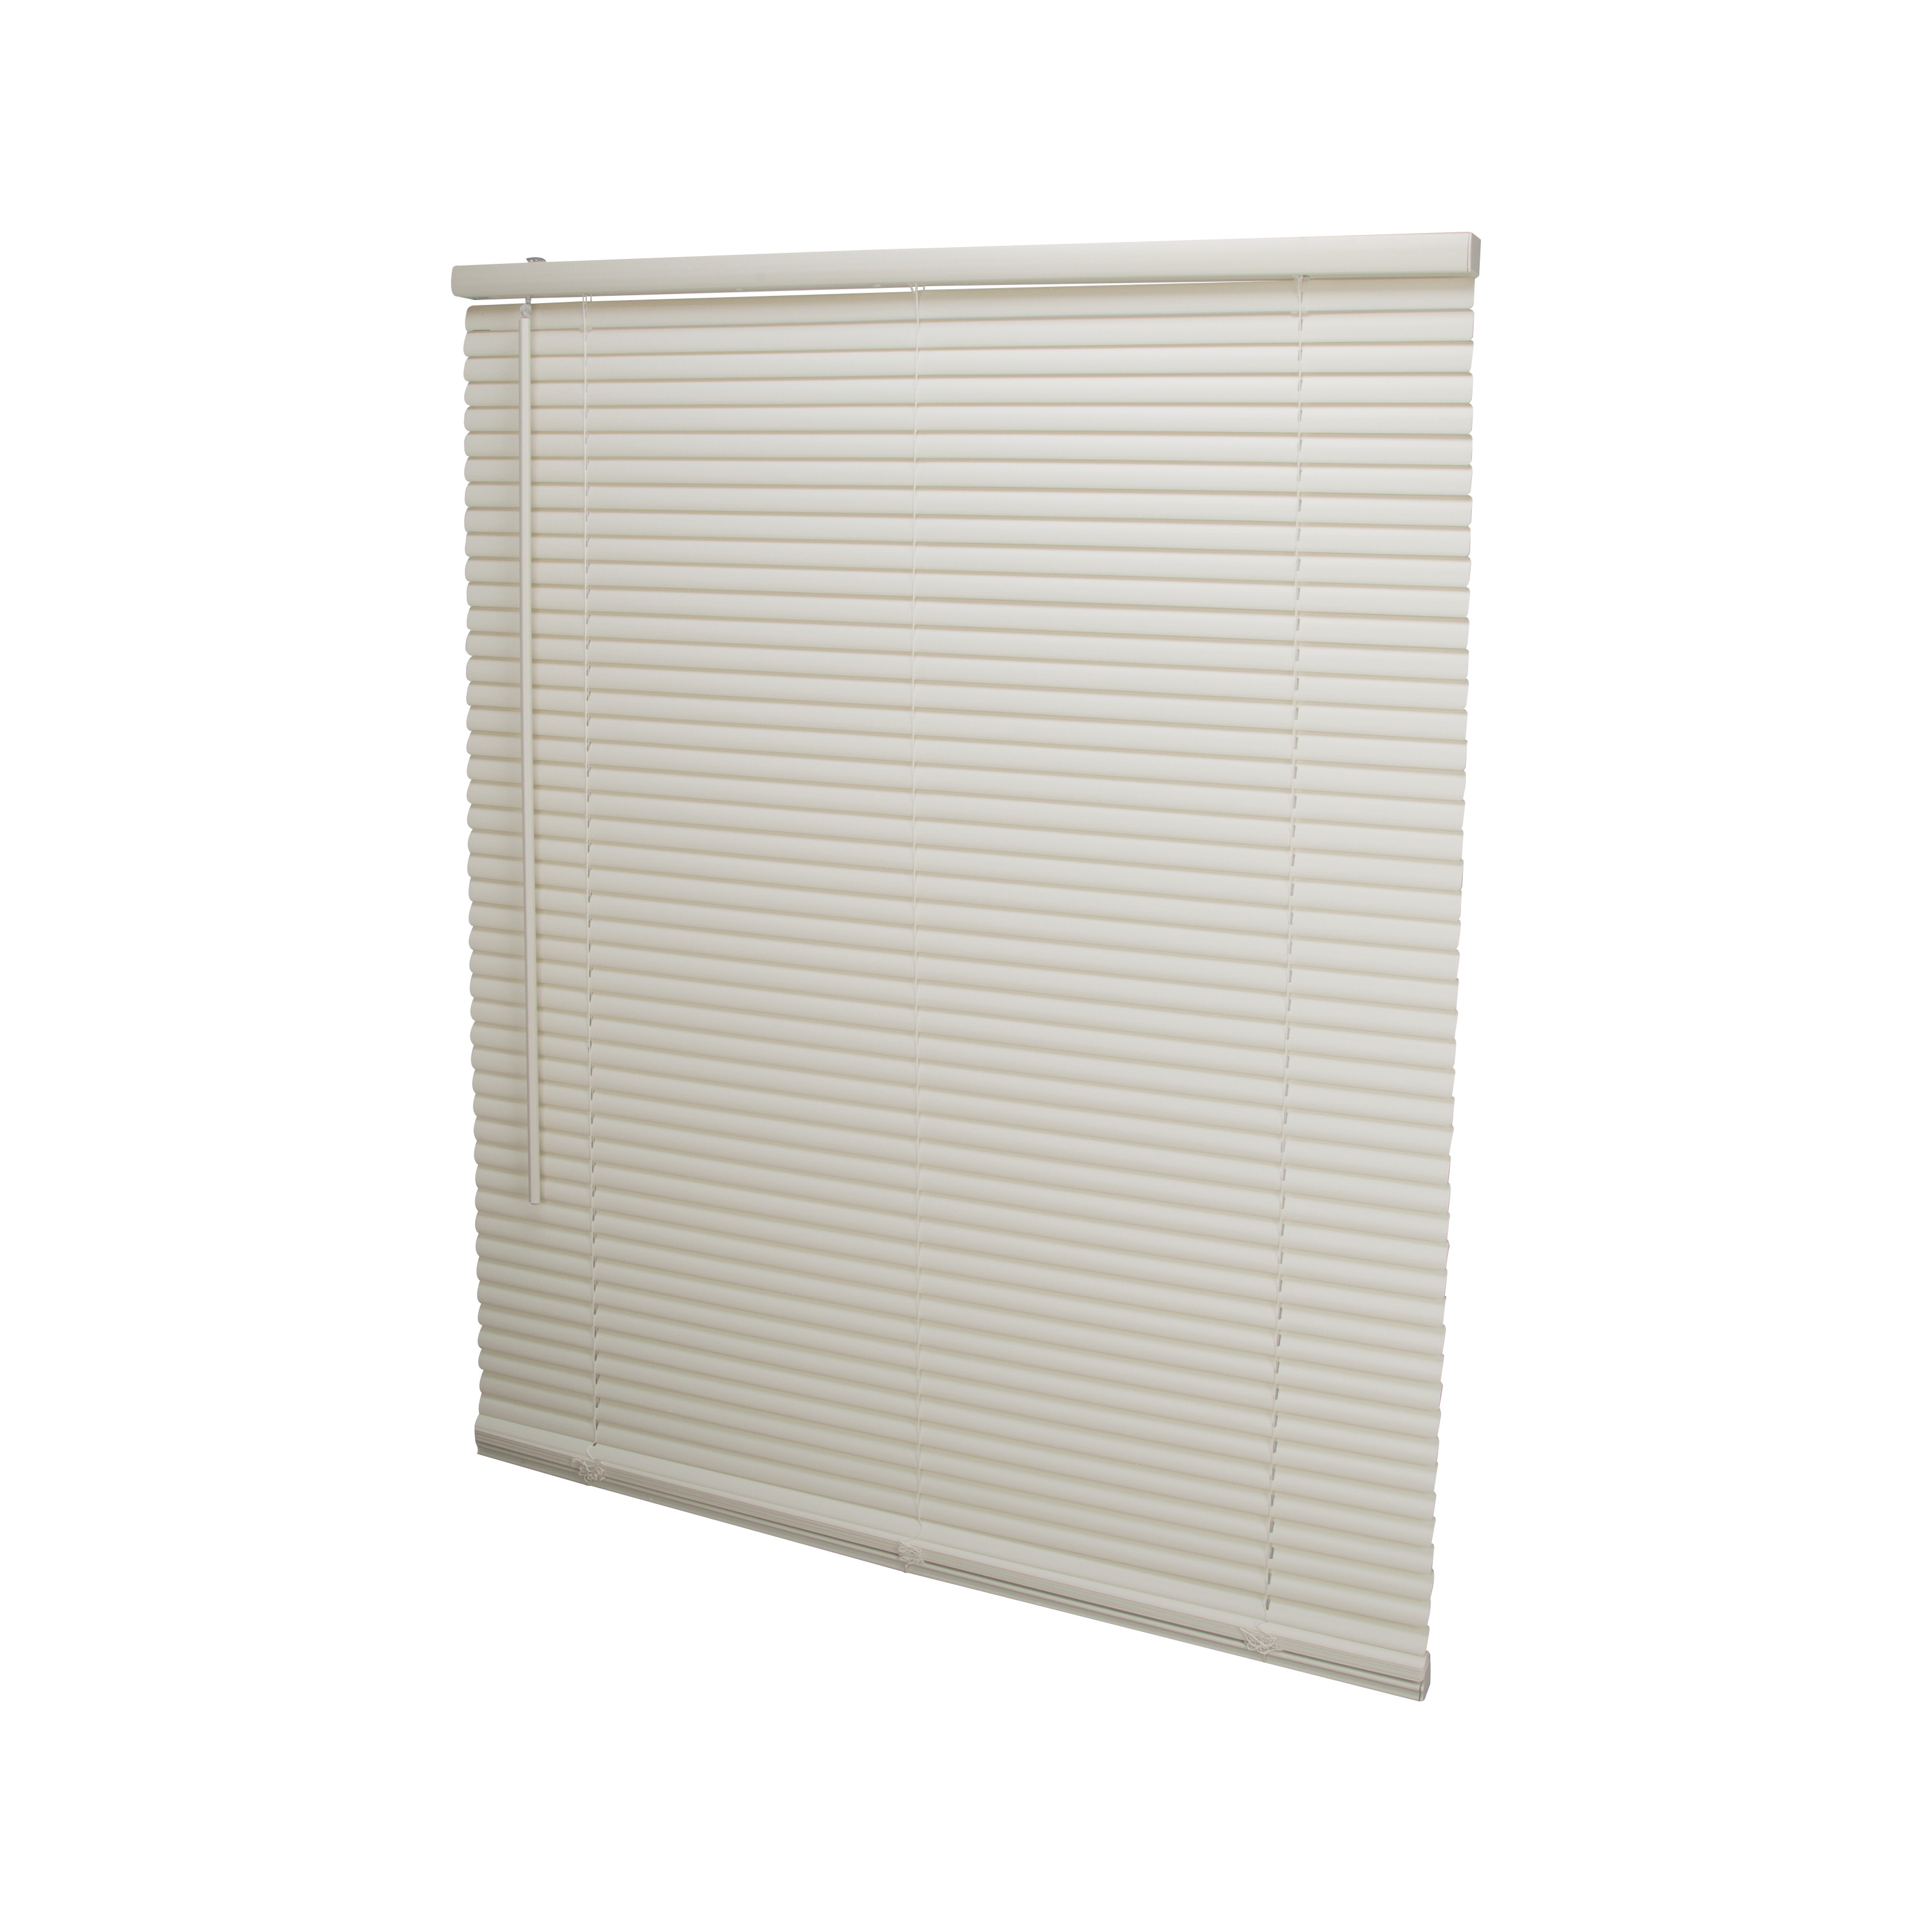 Picture of Simple Spaces PVCMB-10AA Cordless Mini Blind, 64 in L, 35 in W, Vinyl, Alabaster